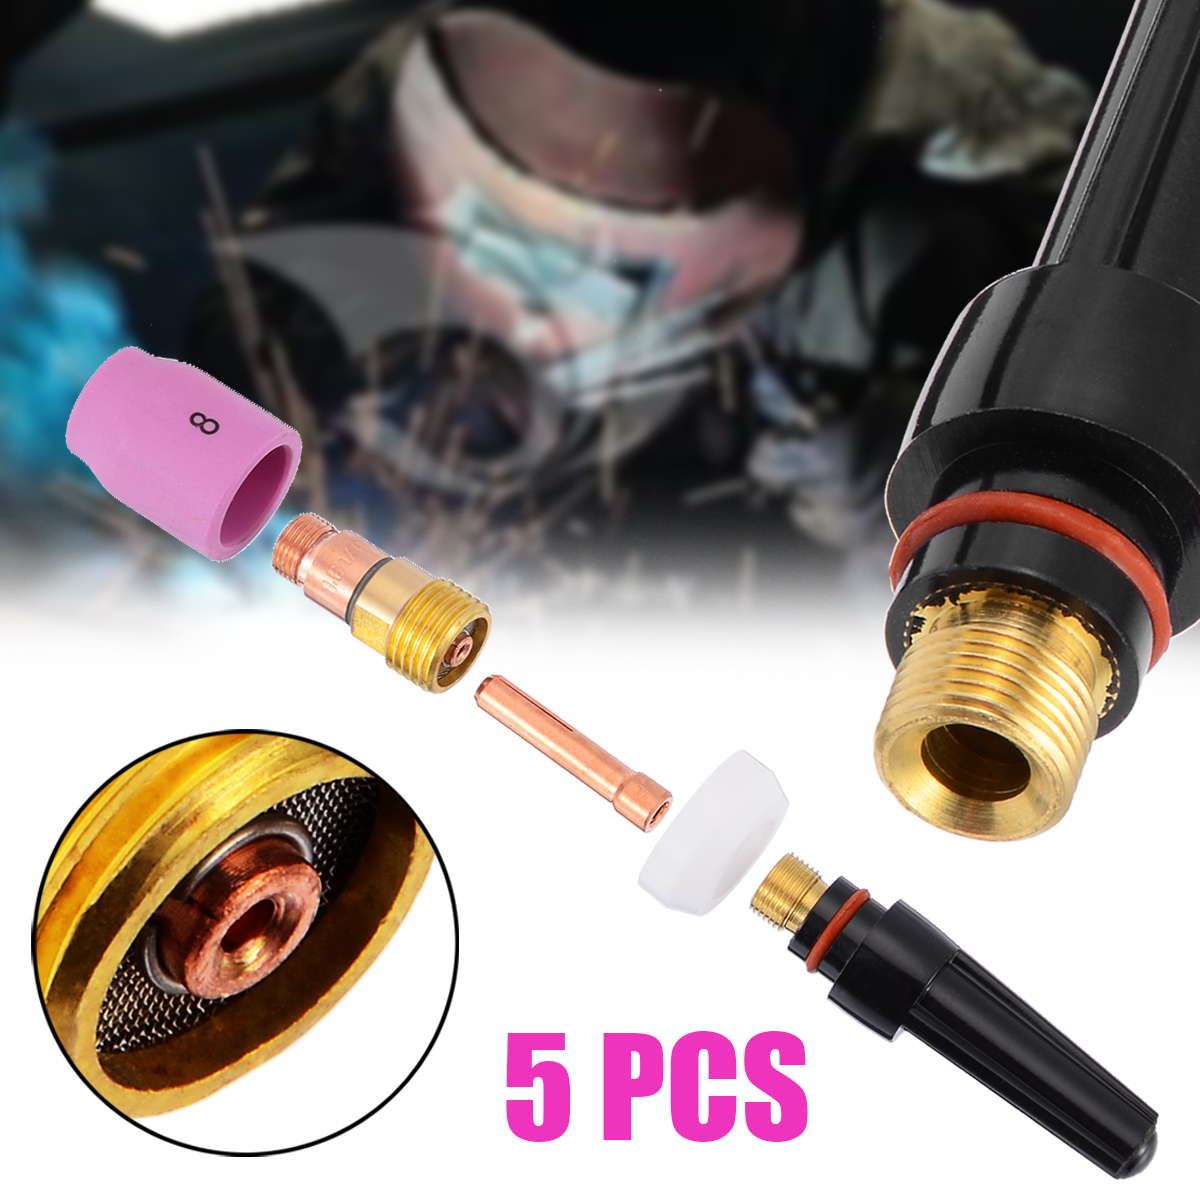 Durable 5pcs/set Welding Torch Stubby Cup Gas Collet Body Lens Kit For Tig WP-17/18/26 1.6mm